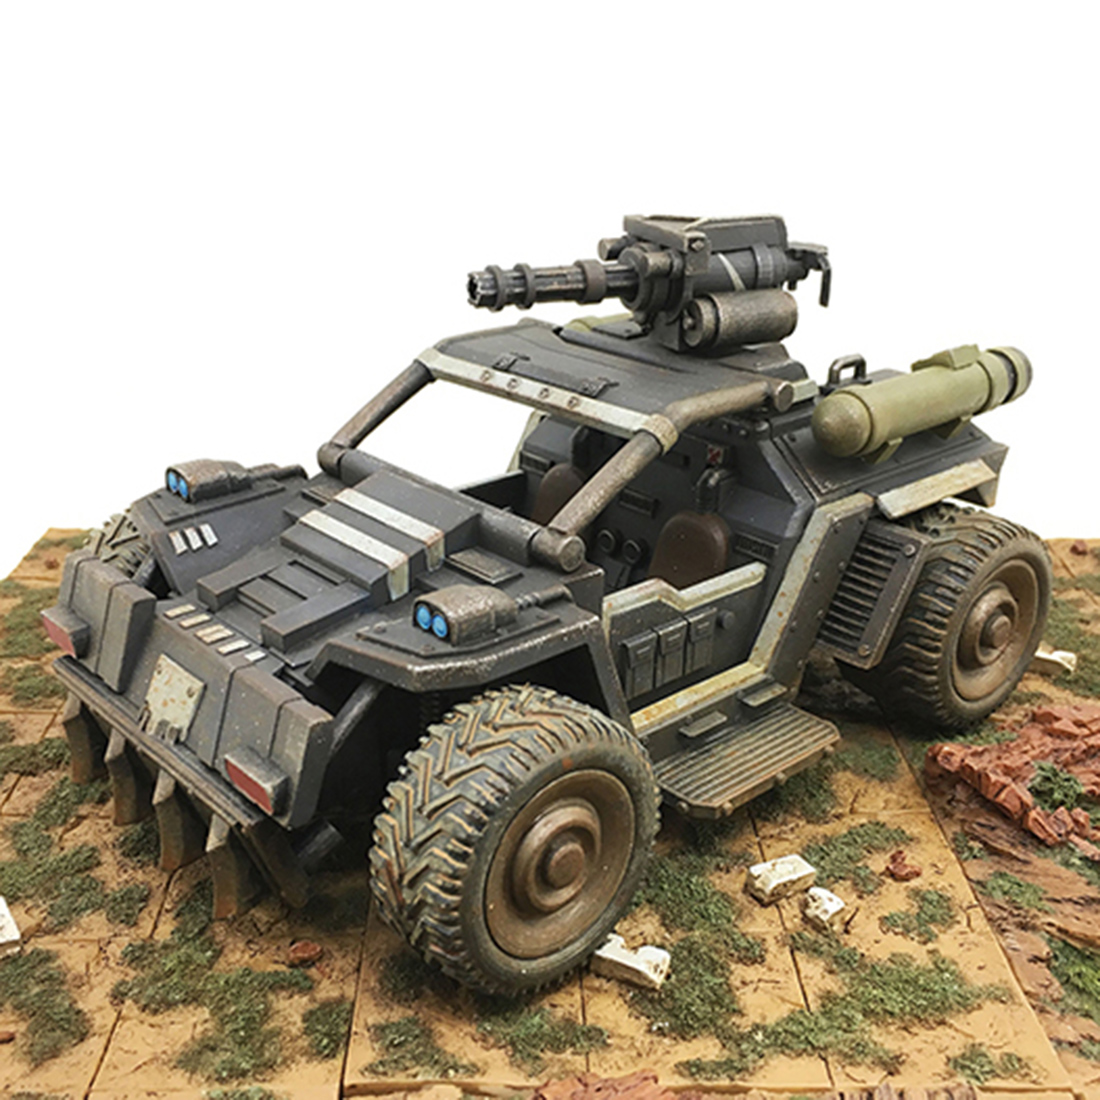 1/27 Movable Mecha Figure Wild Rhinoceros Armored Assault Vehicle DIY Collectable Handwork Military Vehicle Model Present Gift